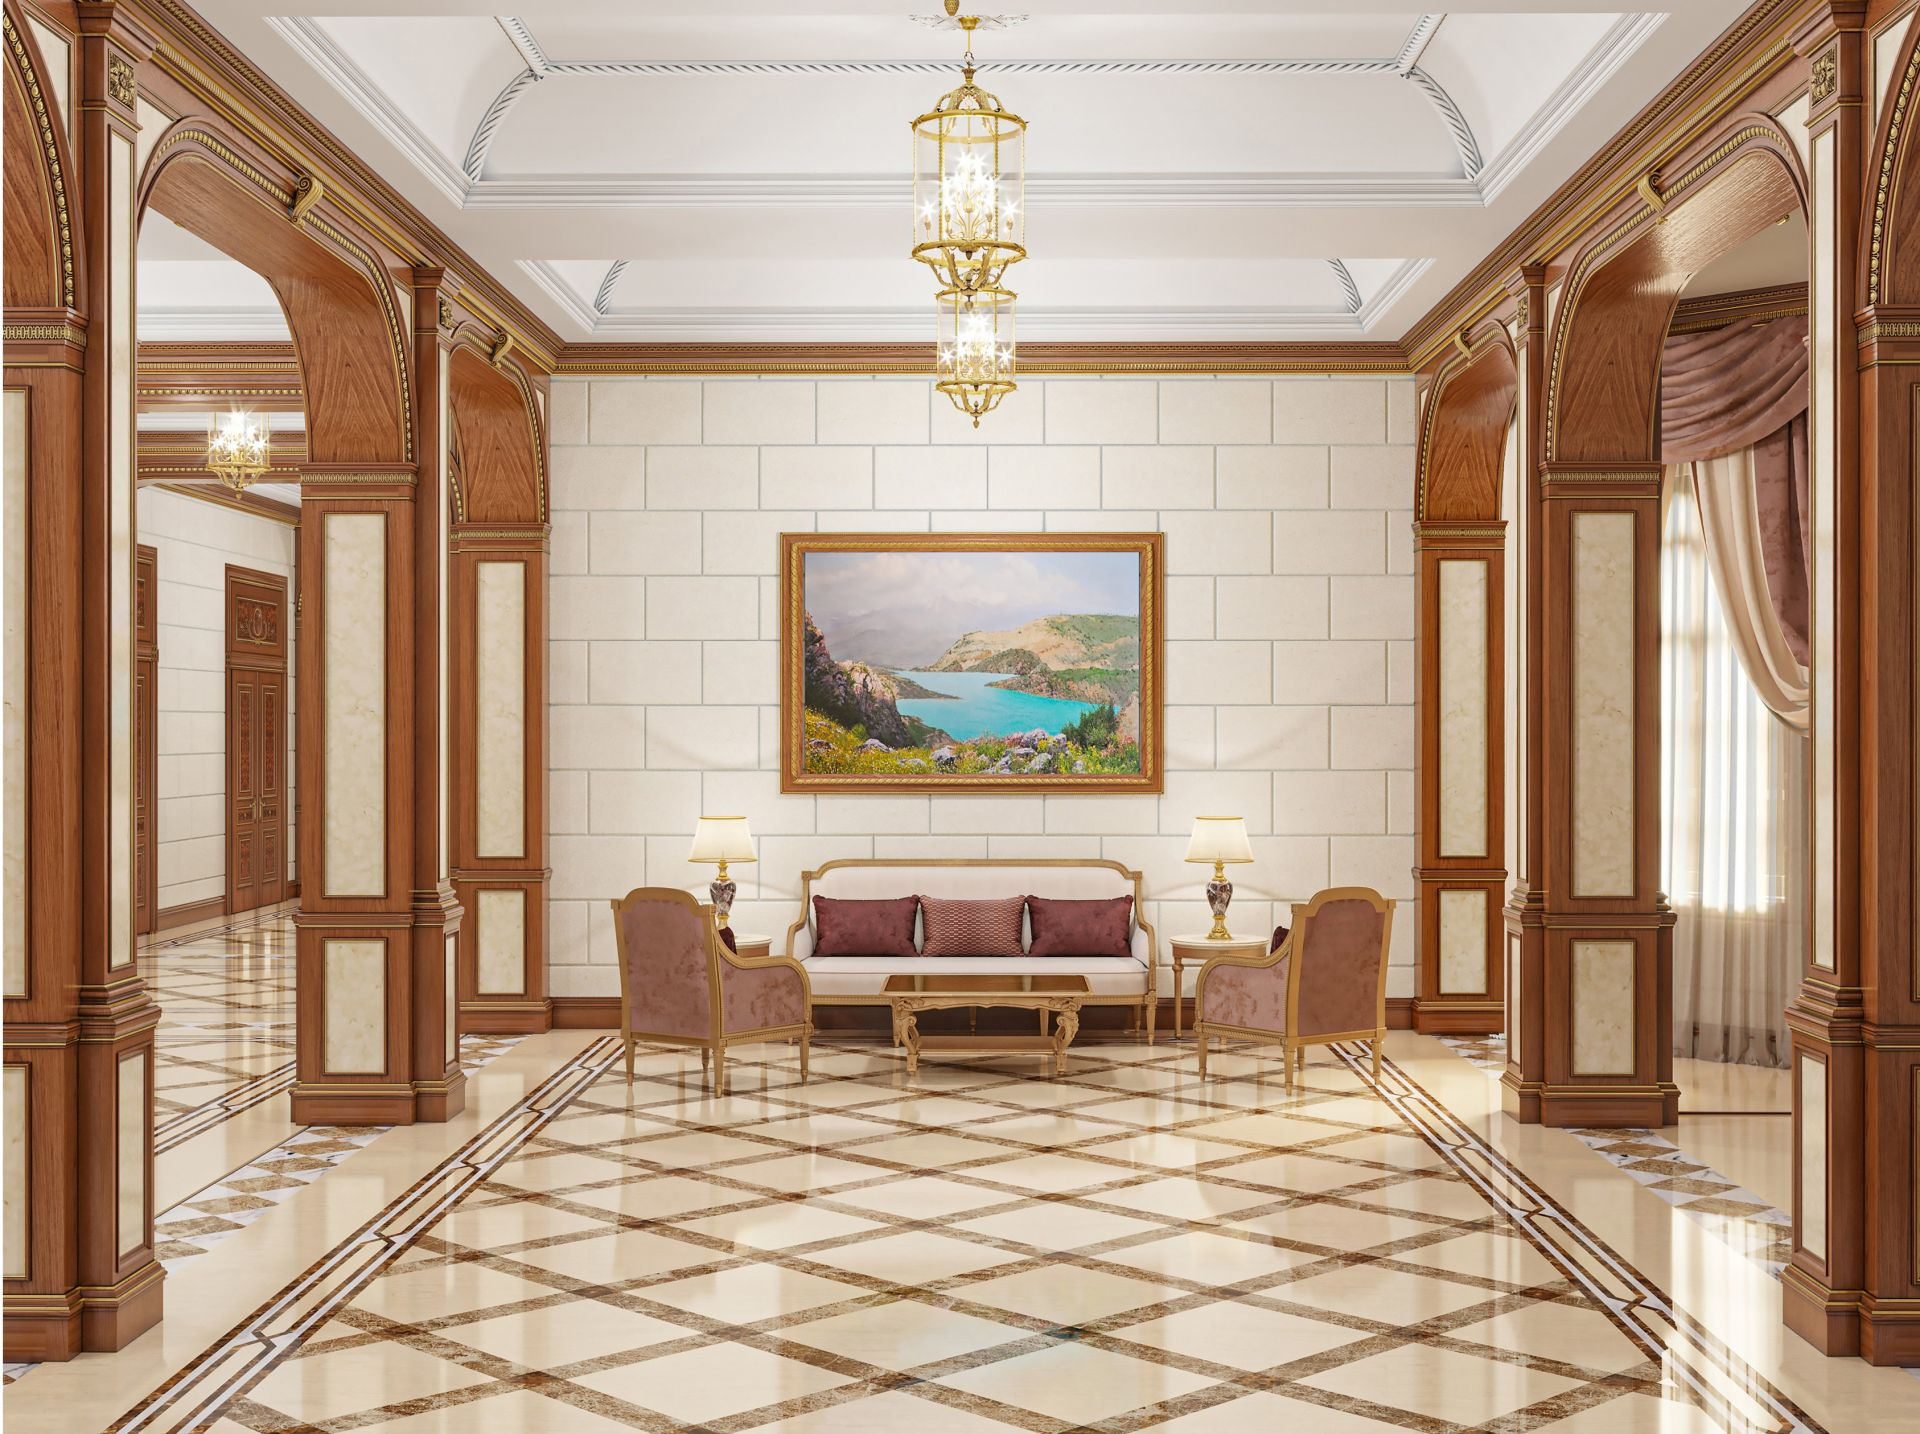 Design, Neoclassical-style hall interior